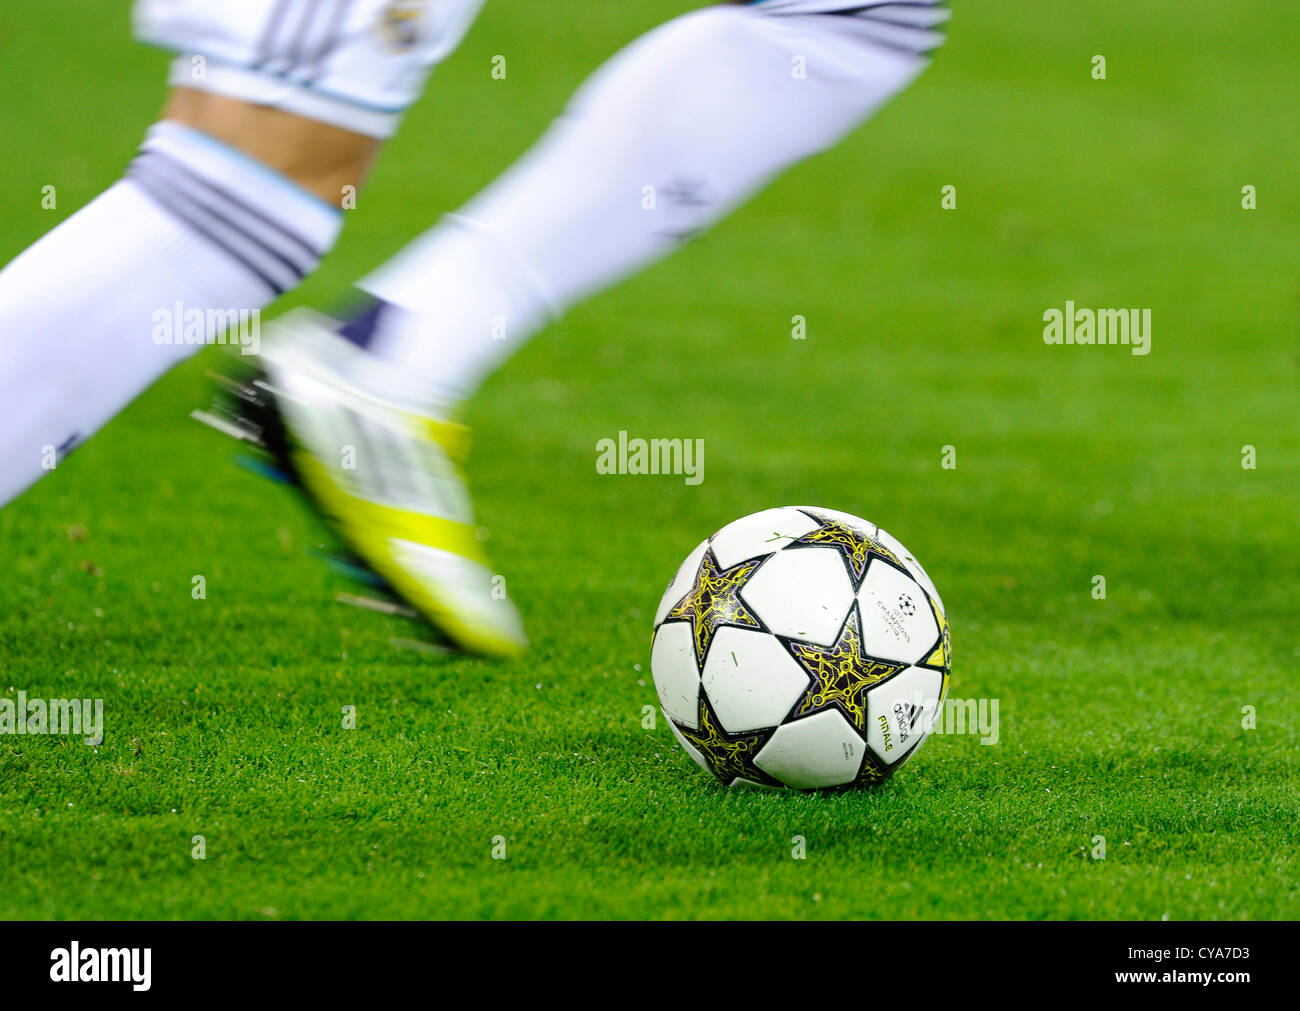 Legs of a Real Madrid Football player plays with UEFA Champions League Ball Adidas Finale 12 OMB on pitch - Stock Image